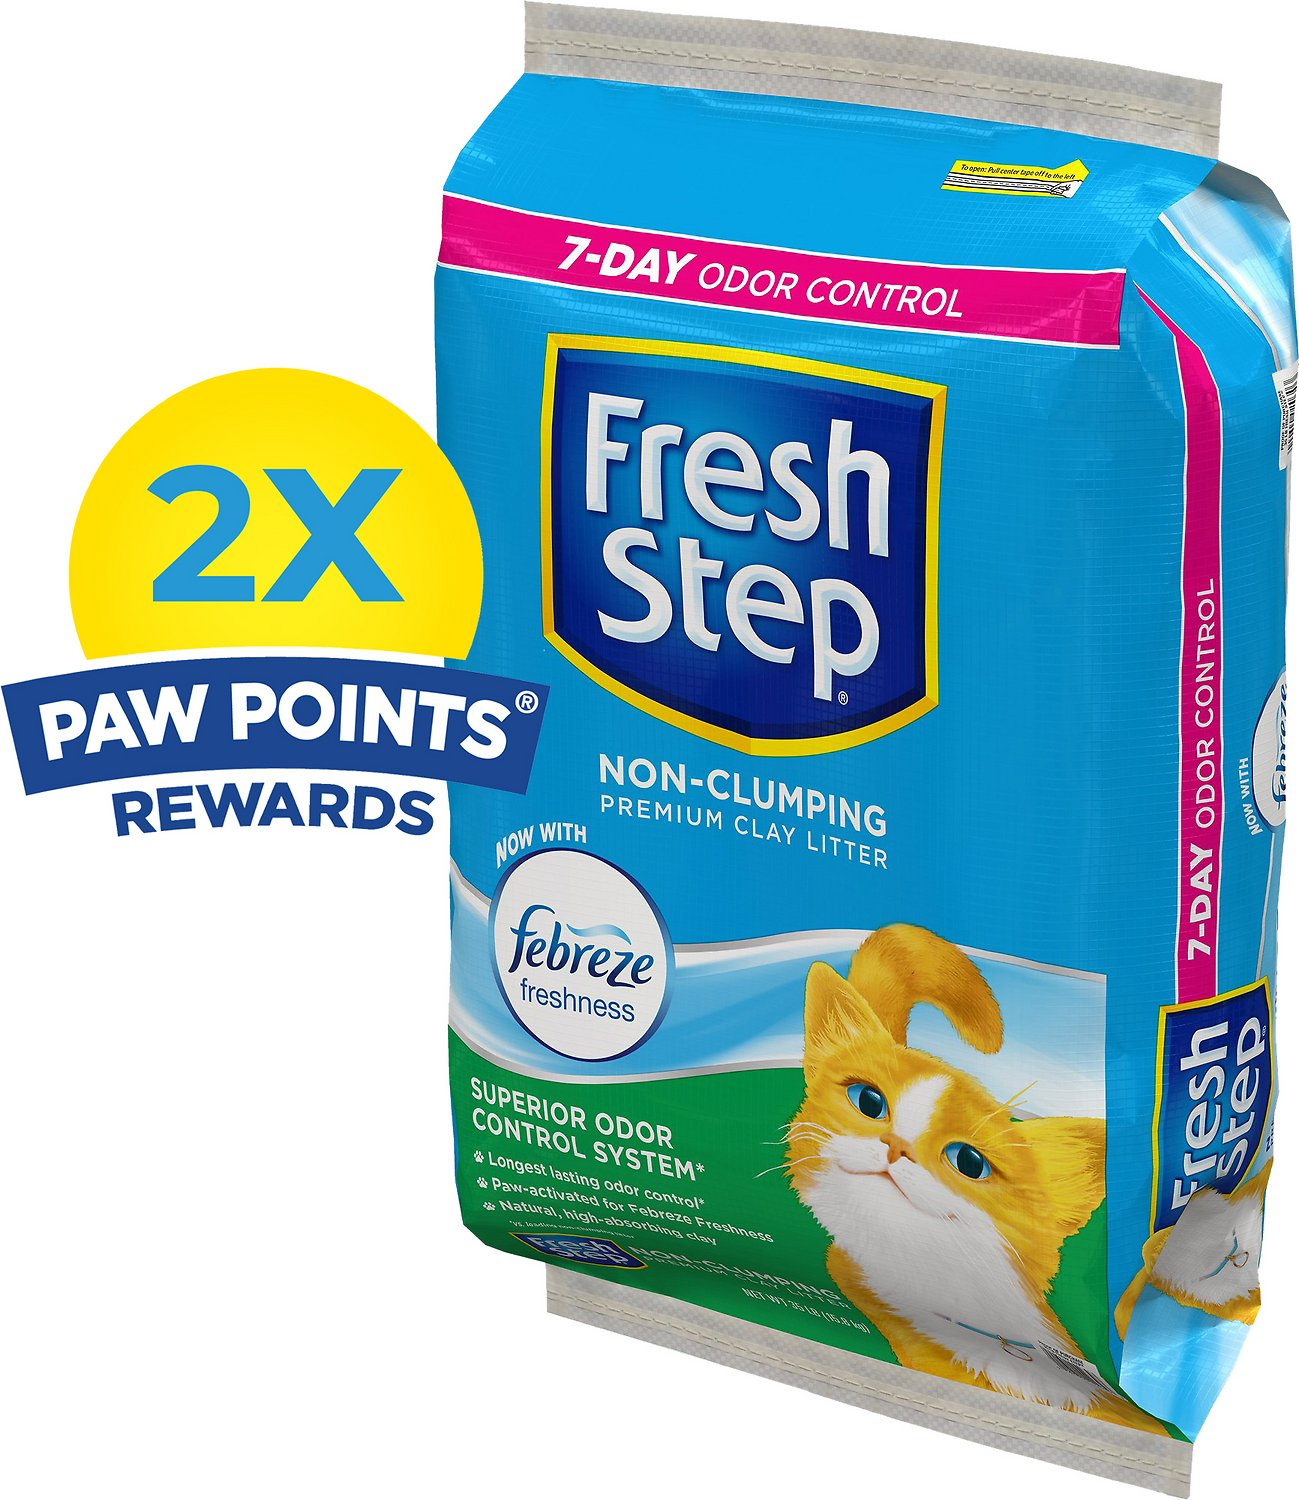 Fresh Step Scented Non-Clumping Clay Cat Litter with Febreeze, 35-lb bag